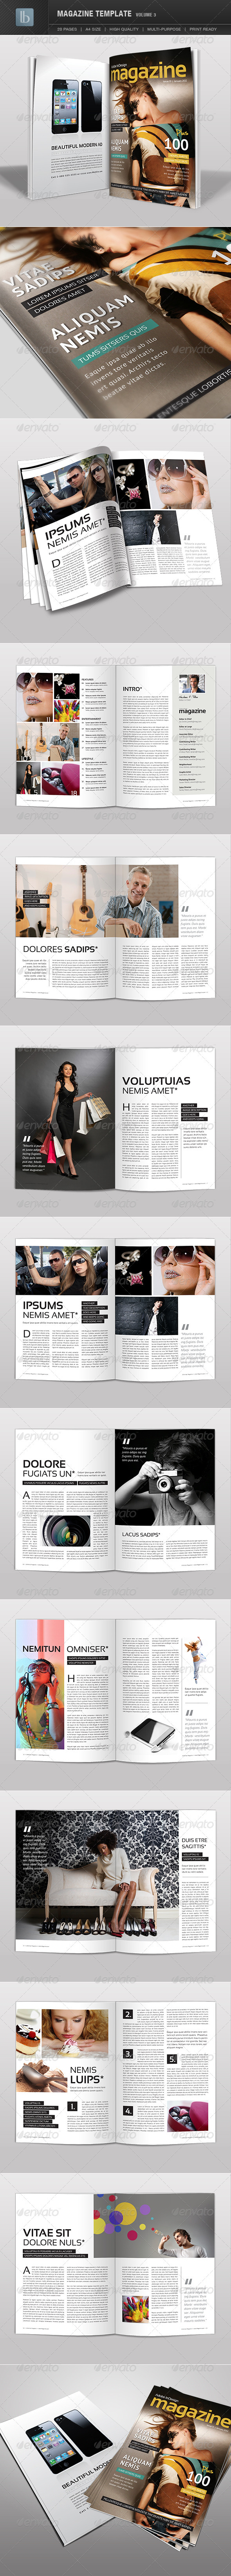 GraphicRiver Magazine Template Volume 3 2438842